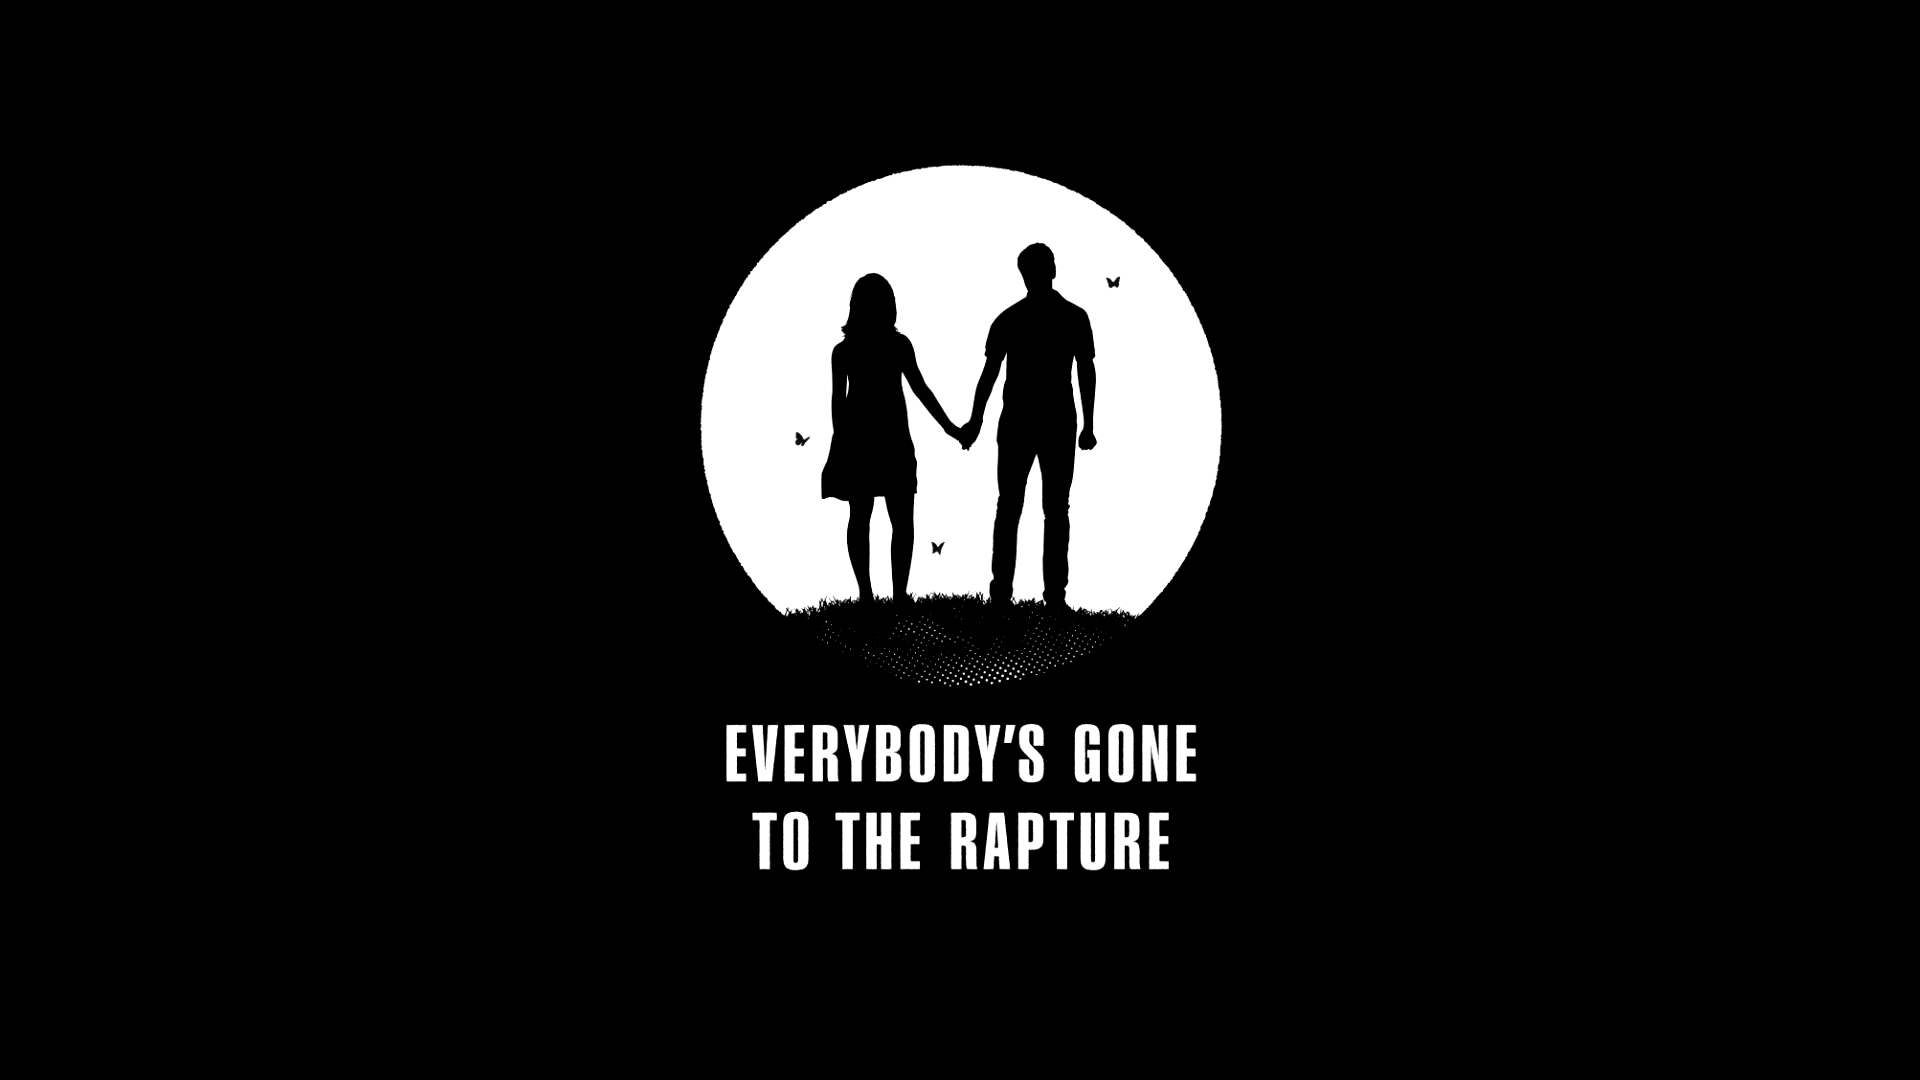 Everybodys_gone_to_the_rapture_logo-ds1-670x376-constrain.jpg